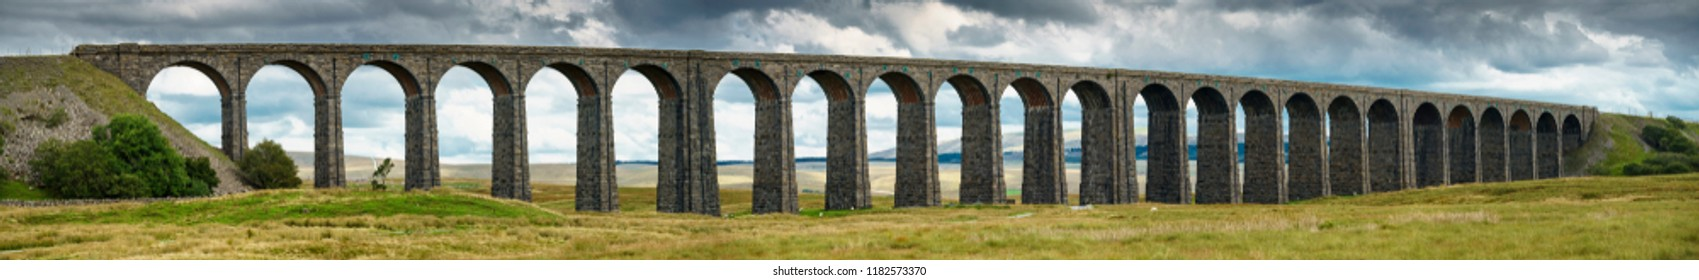 Panorama of Ribblehead Viaduct carrying the Settle to Carlisle railway line across the Ribble Valley, Yorkshire Dales,UK. It is 400m long and 32 m high and was completed in 1875